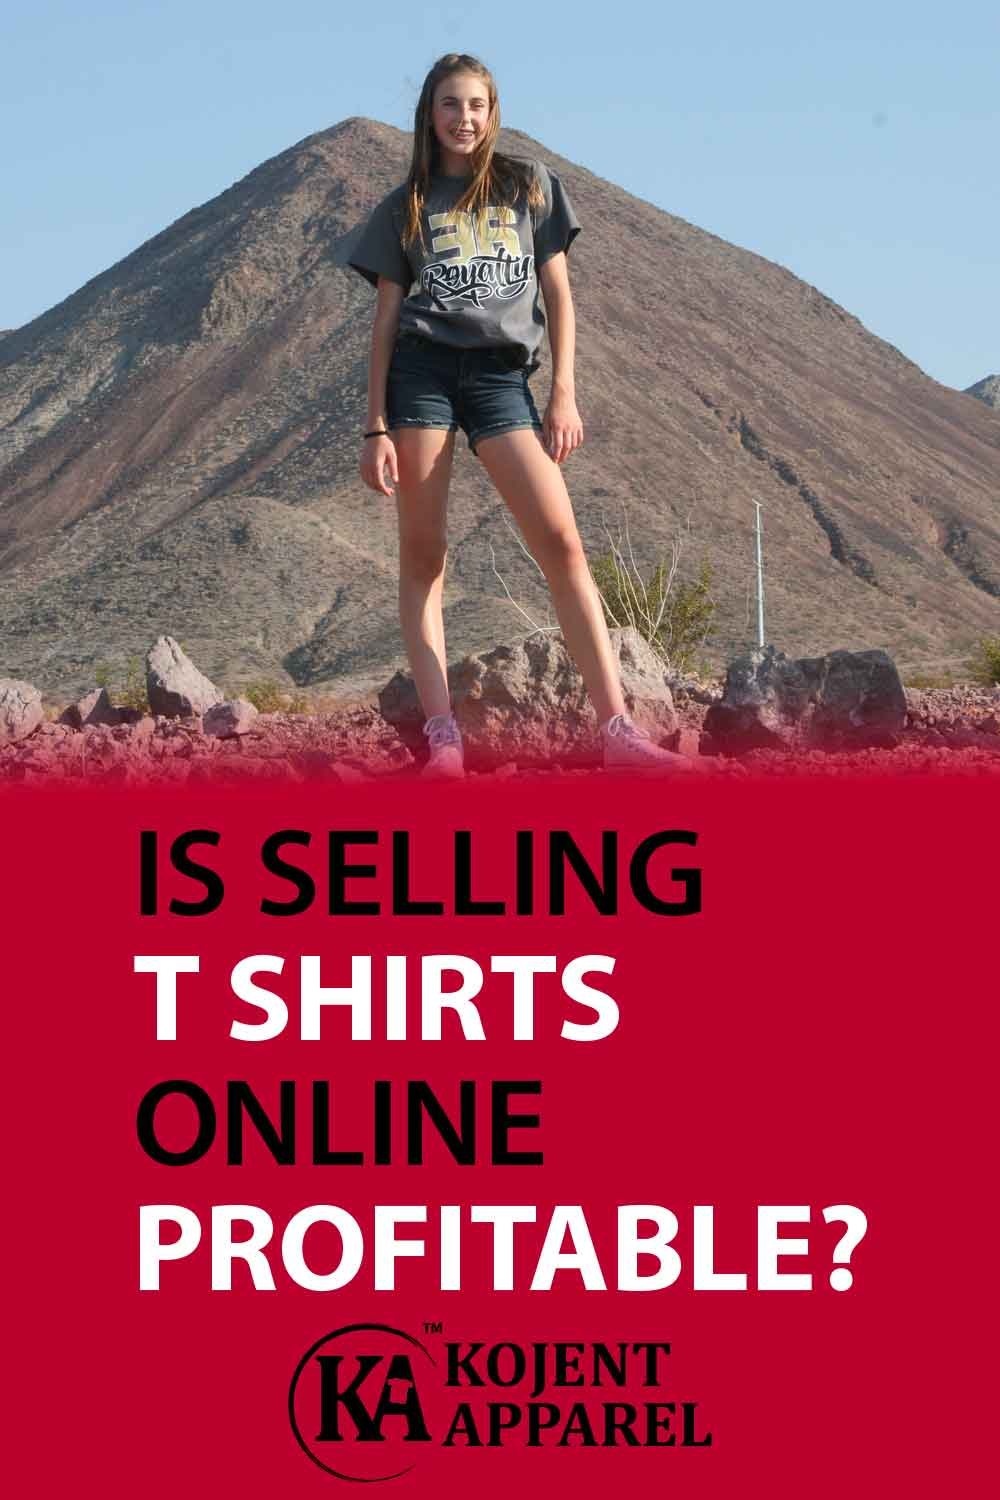 Is Selling T-Shirts Online Profitable - Kojent Apparel